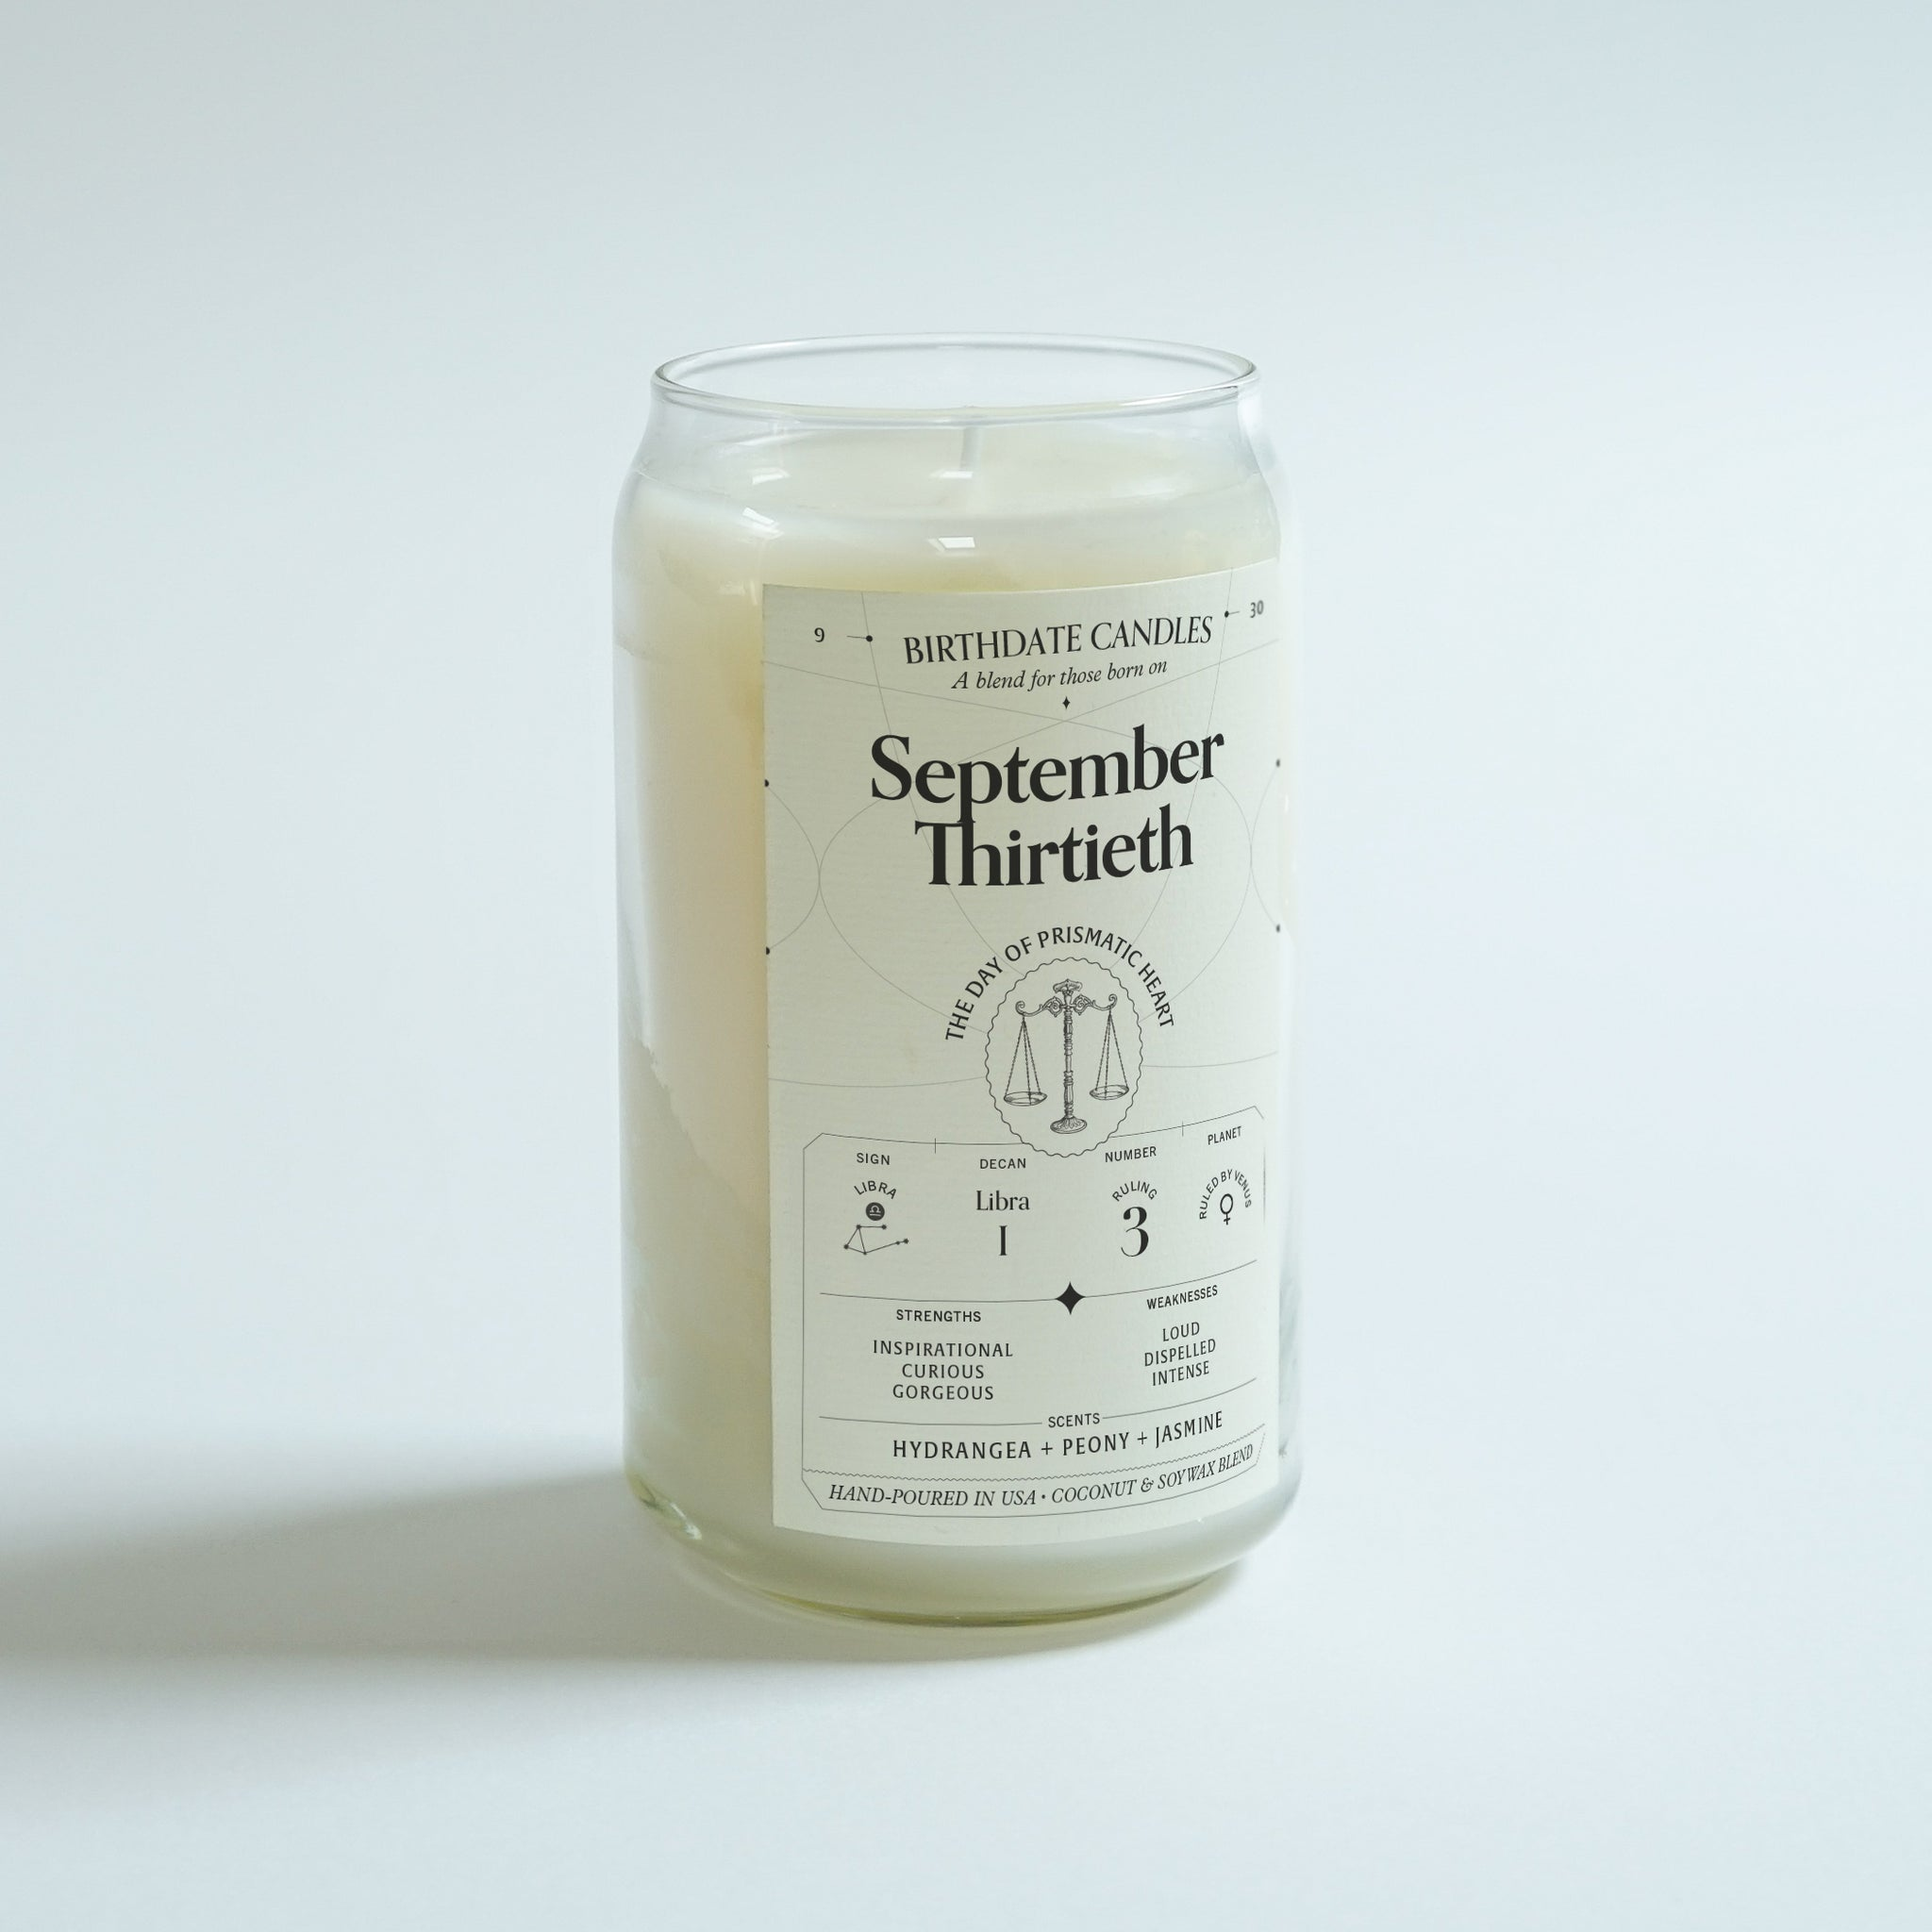 The September Thirtieth Candle